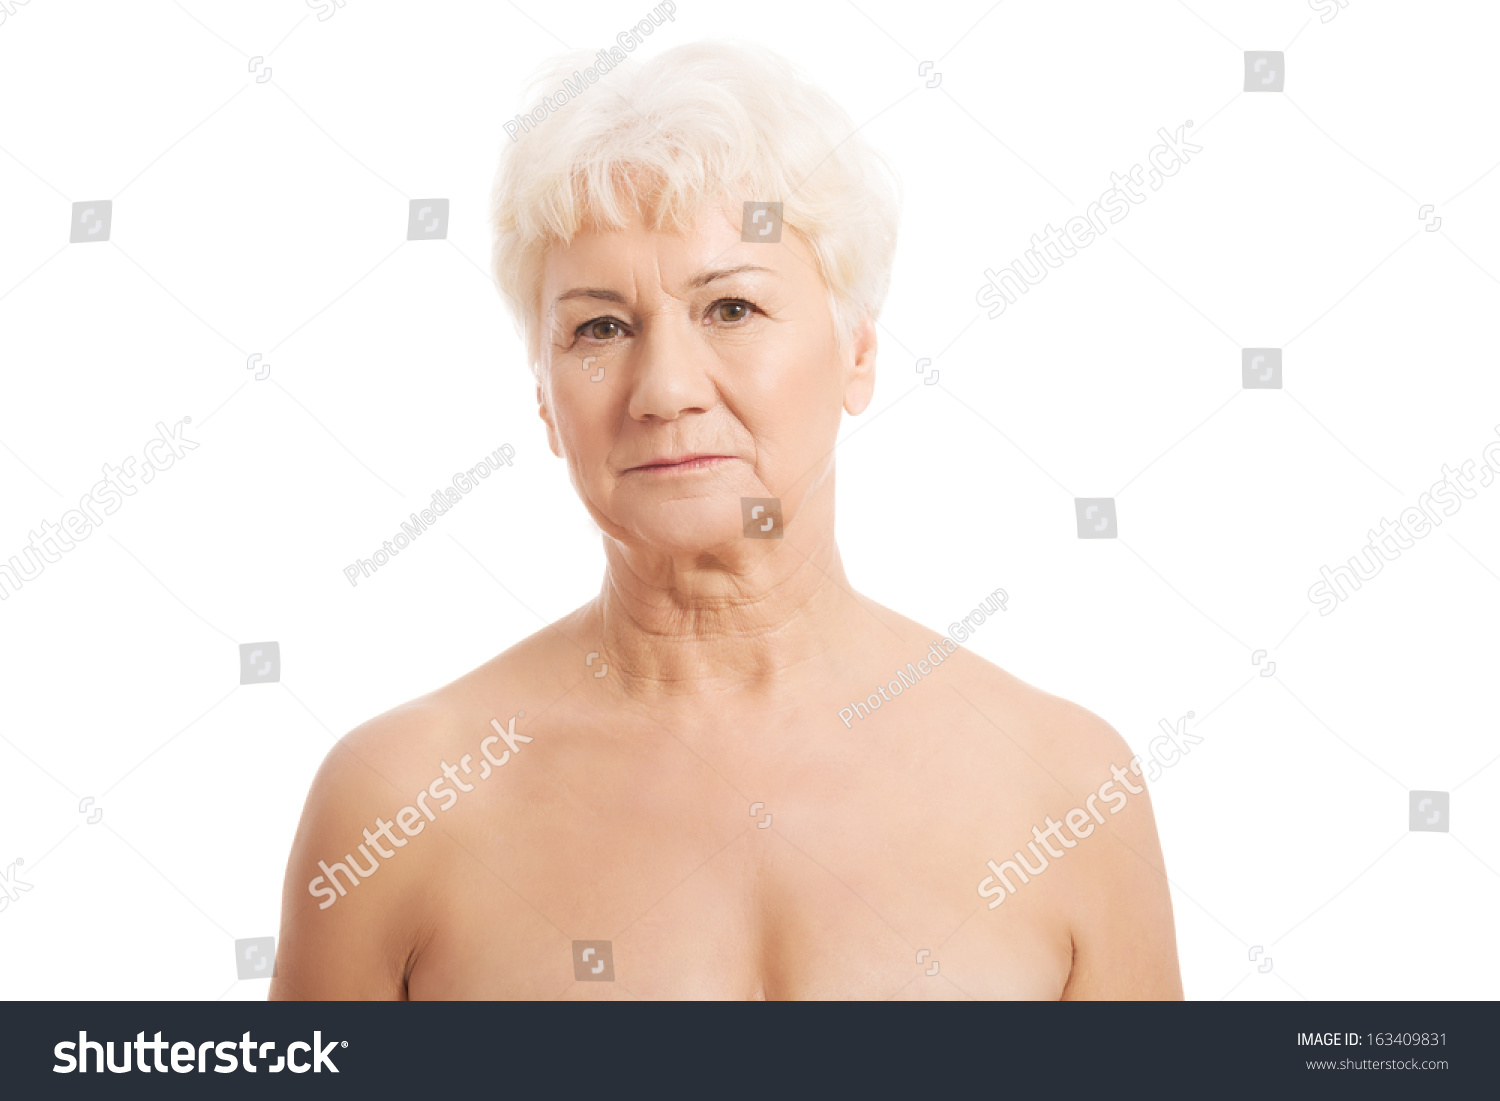 Are mistaken. an elderly woman naked